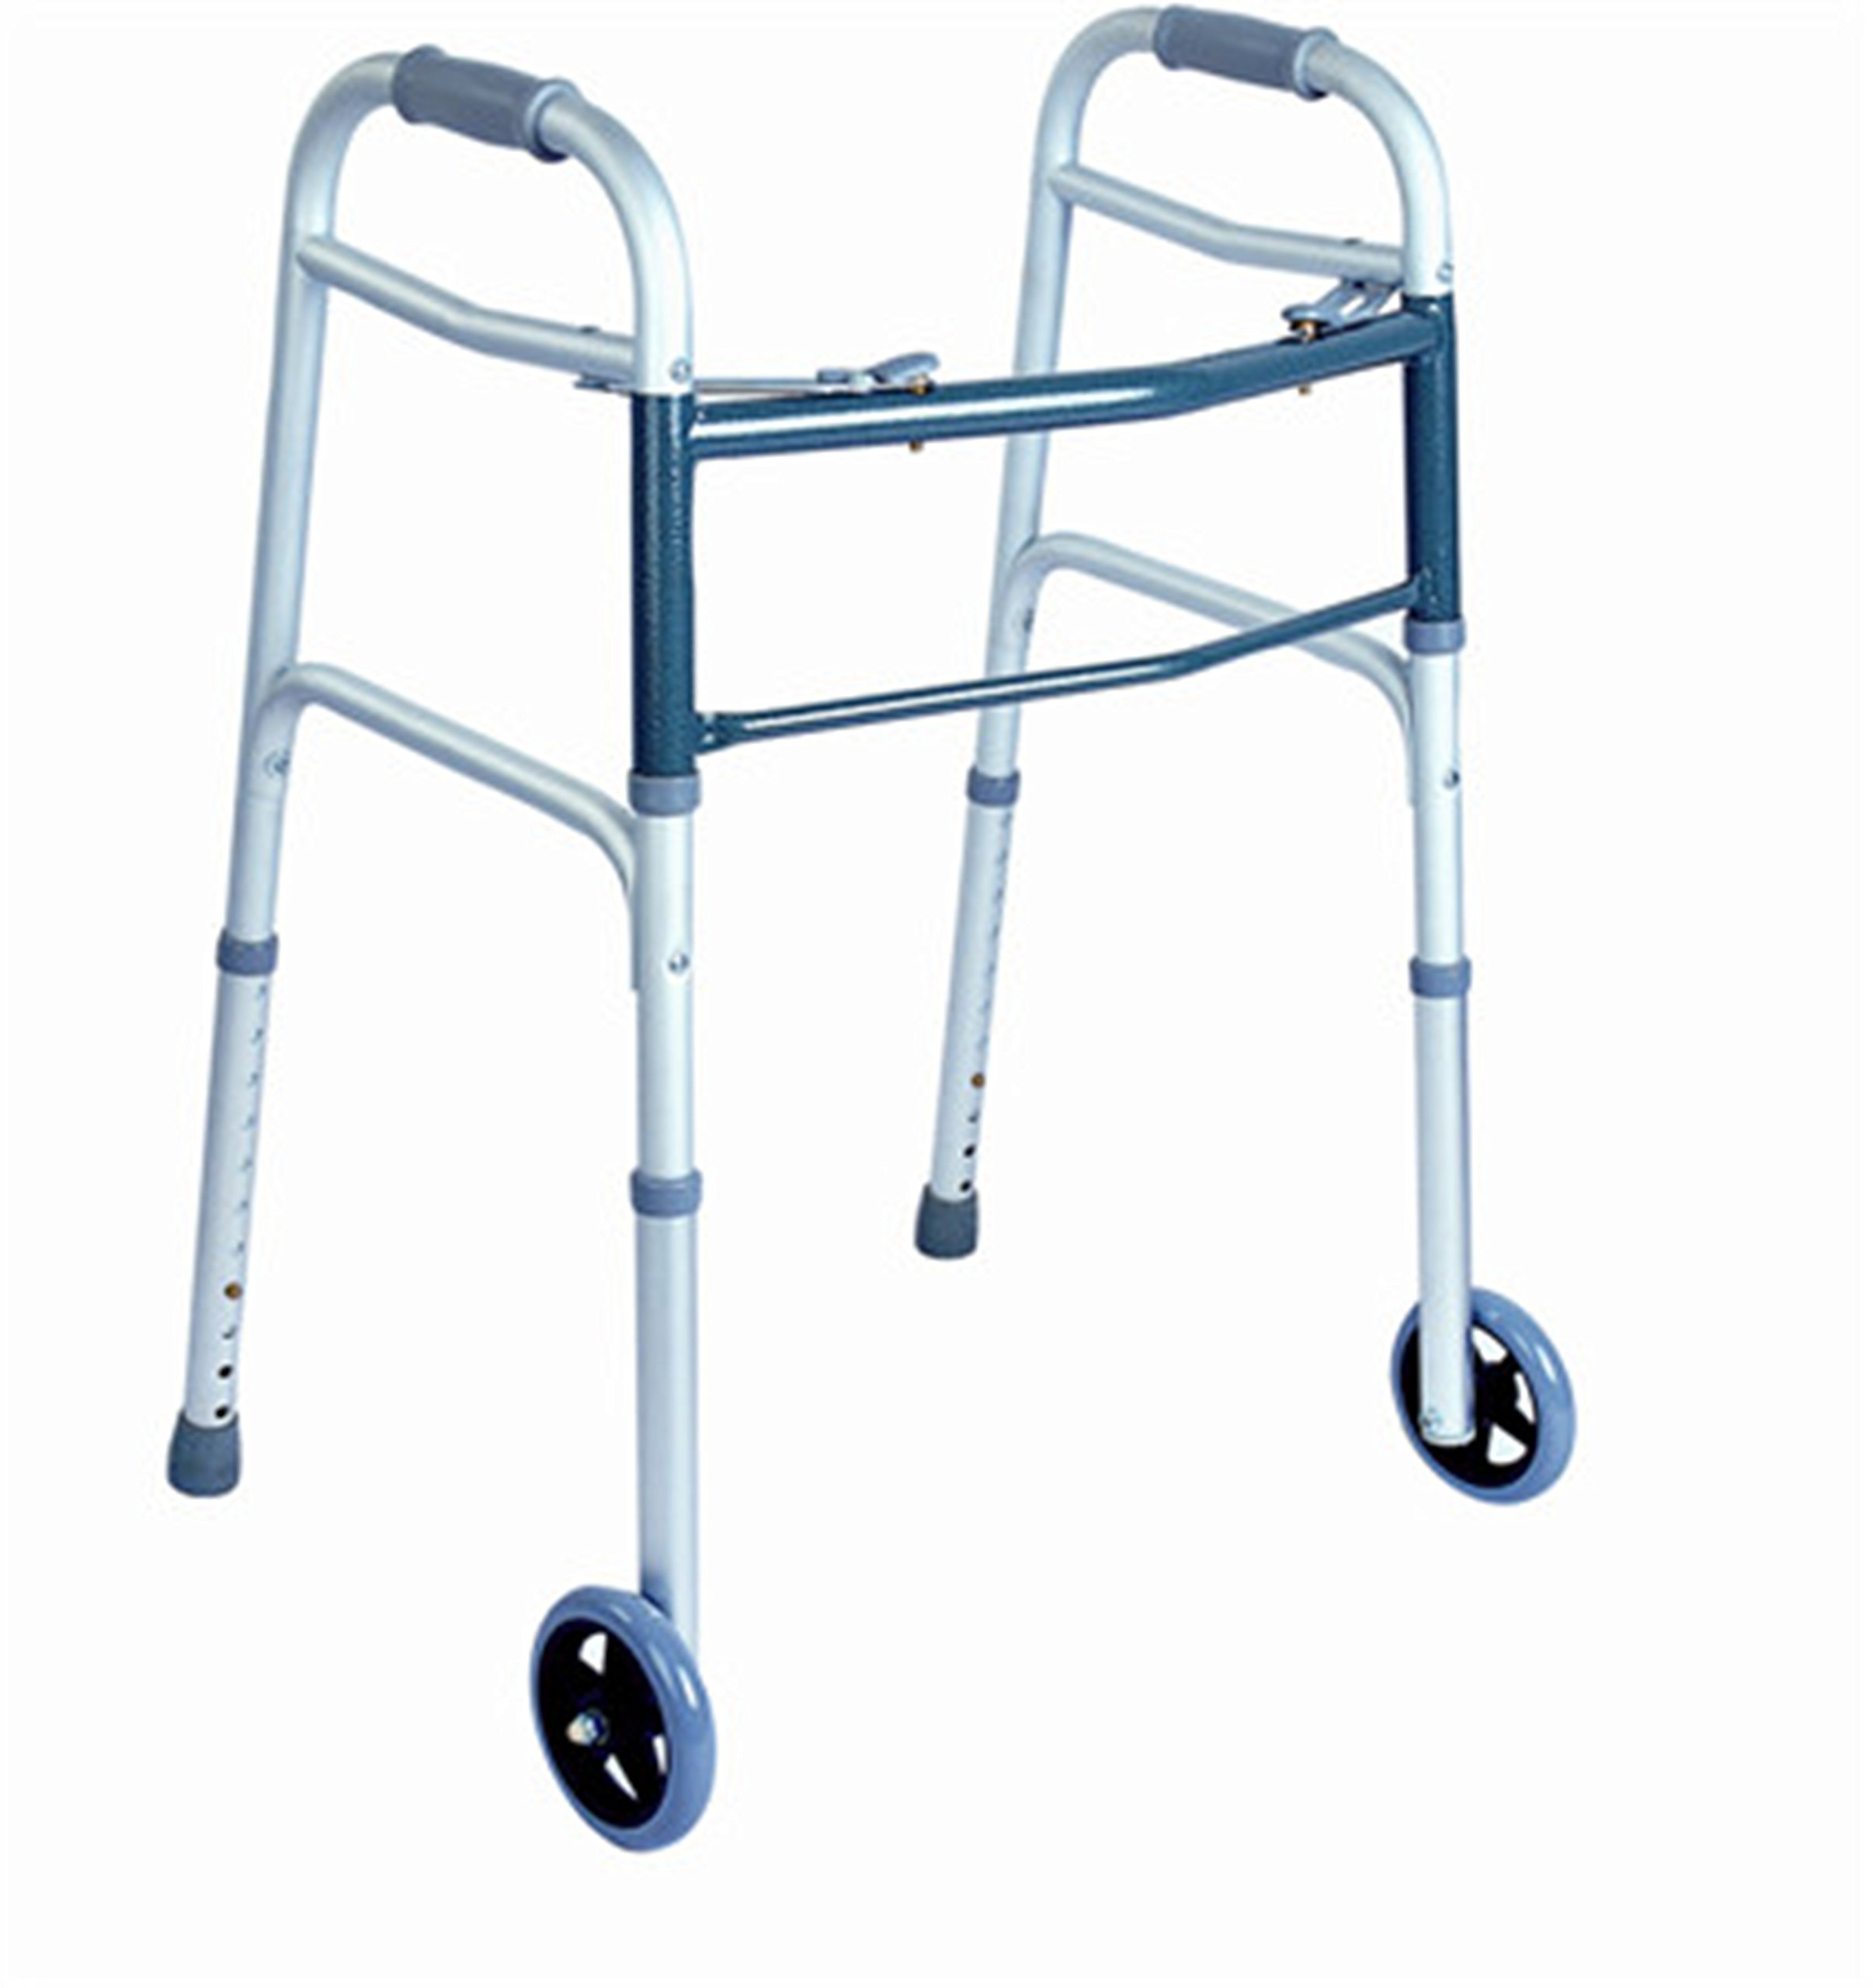 Rehabilitation Advantage Aluminum Two Button Folding Walker with Hand Grips and Wheels